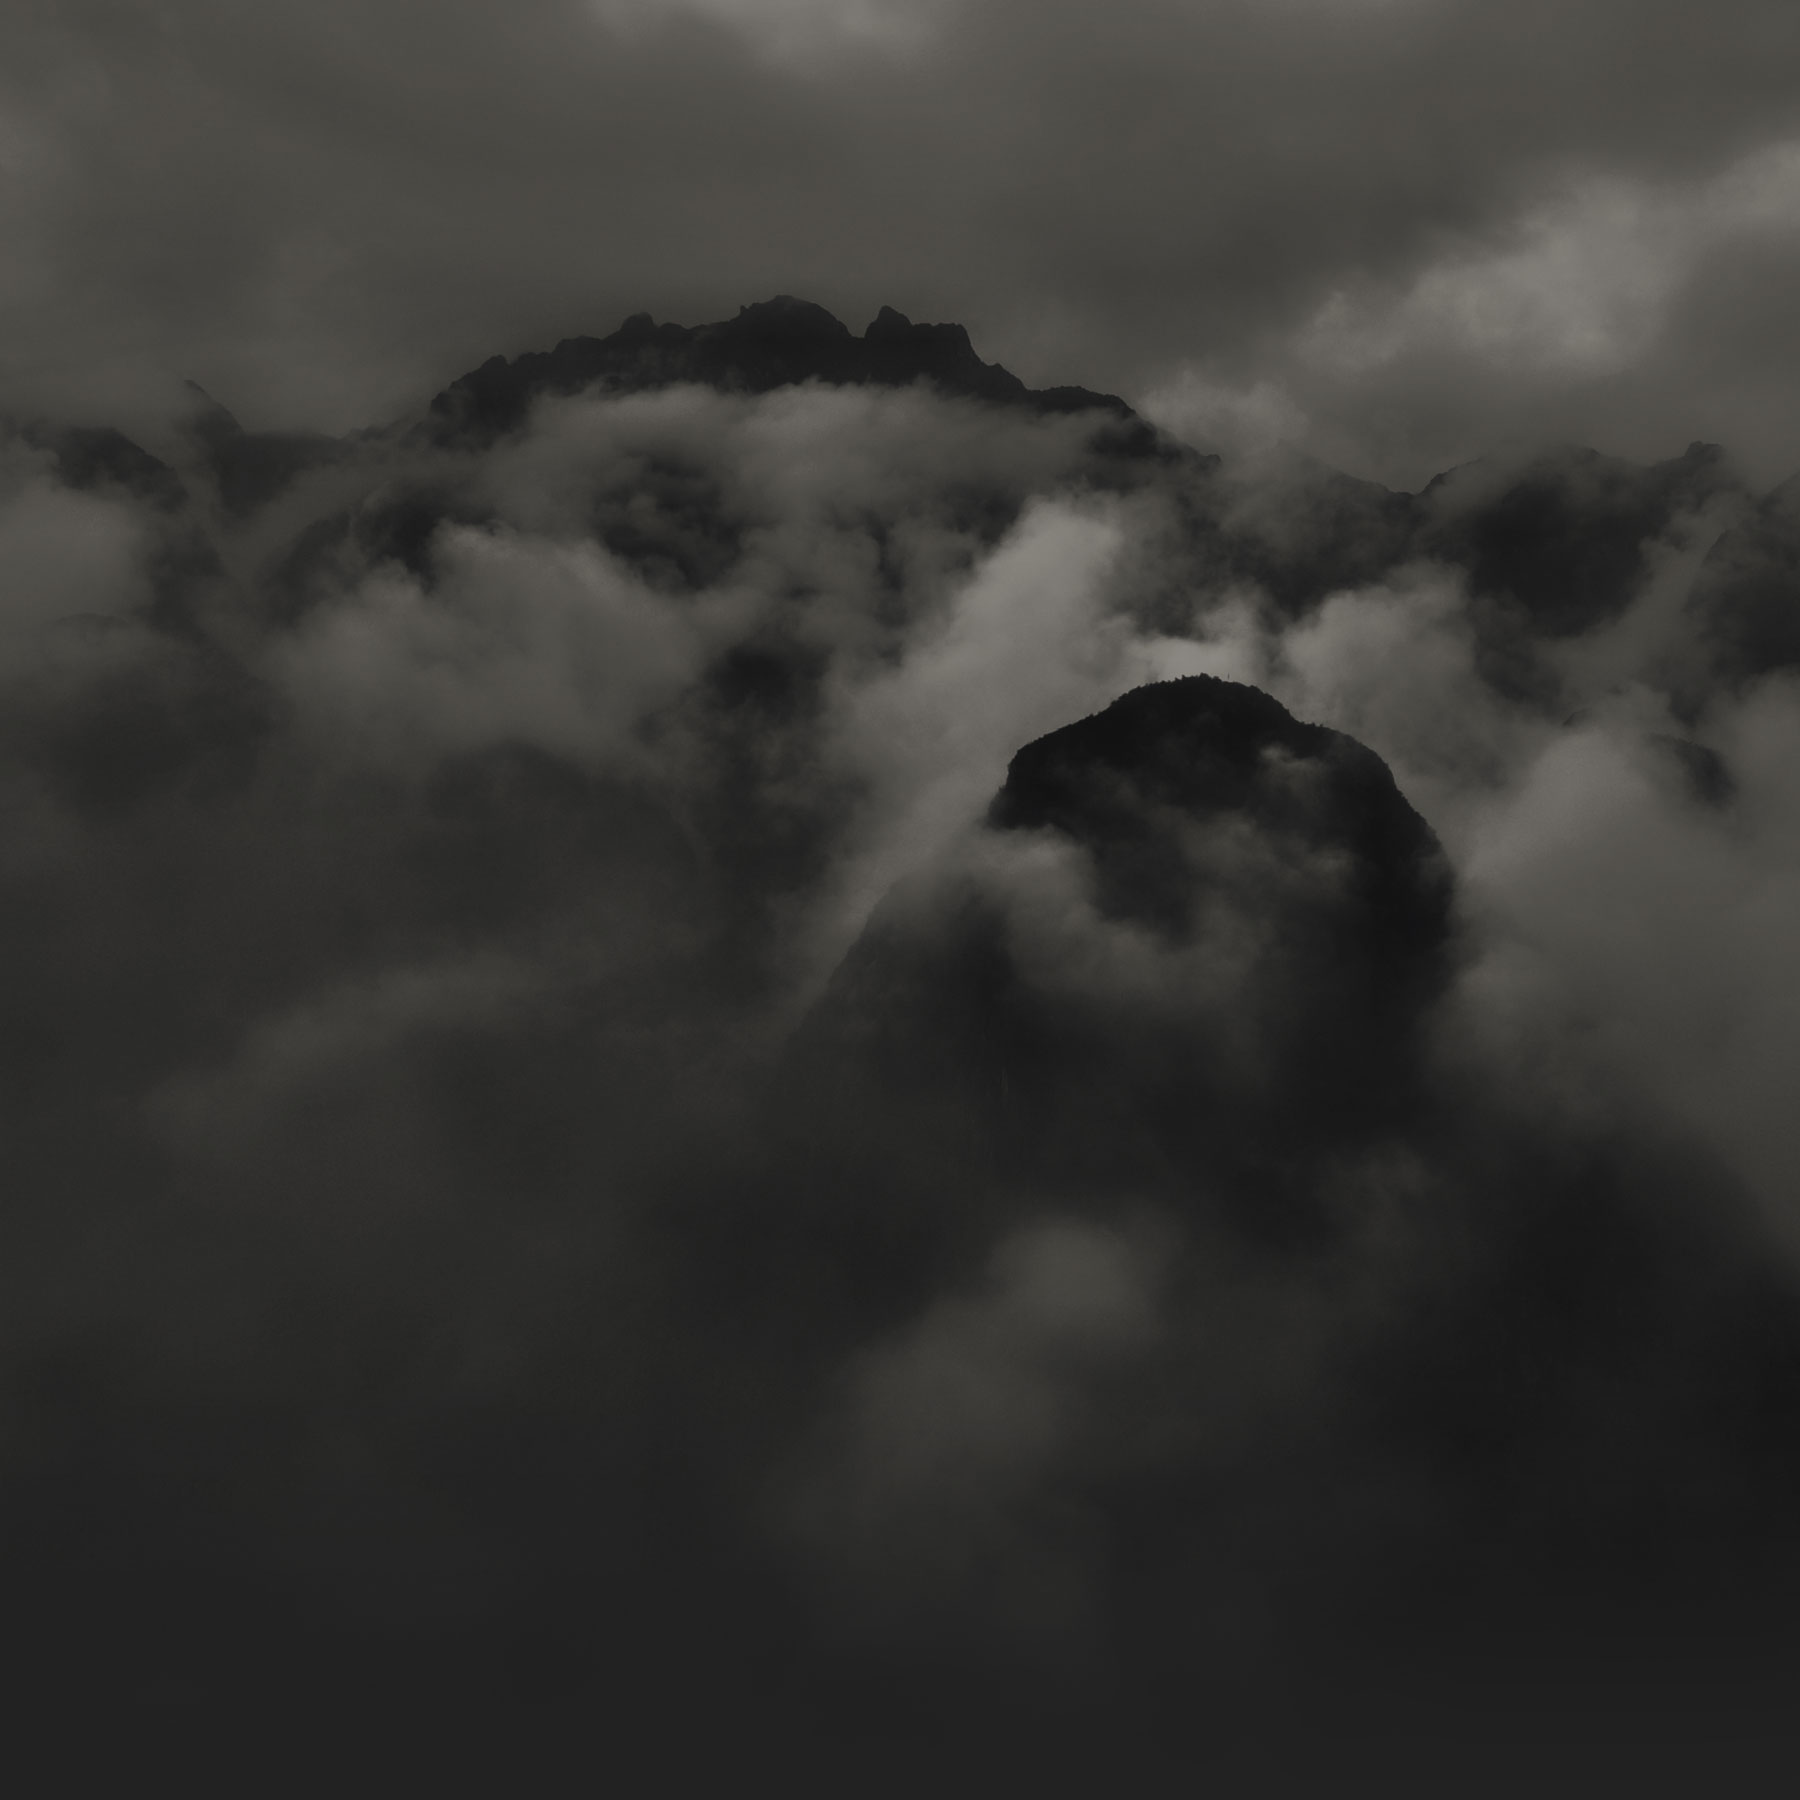 Dark Shadow in the Mountains 85.15 Kb